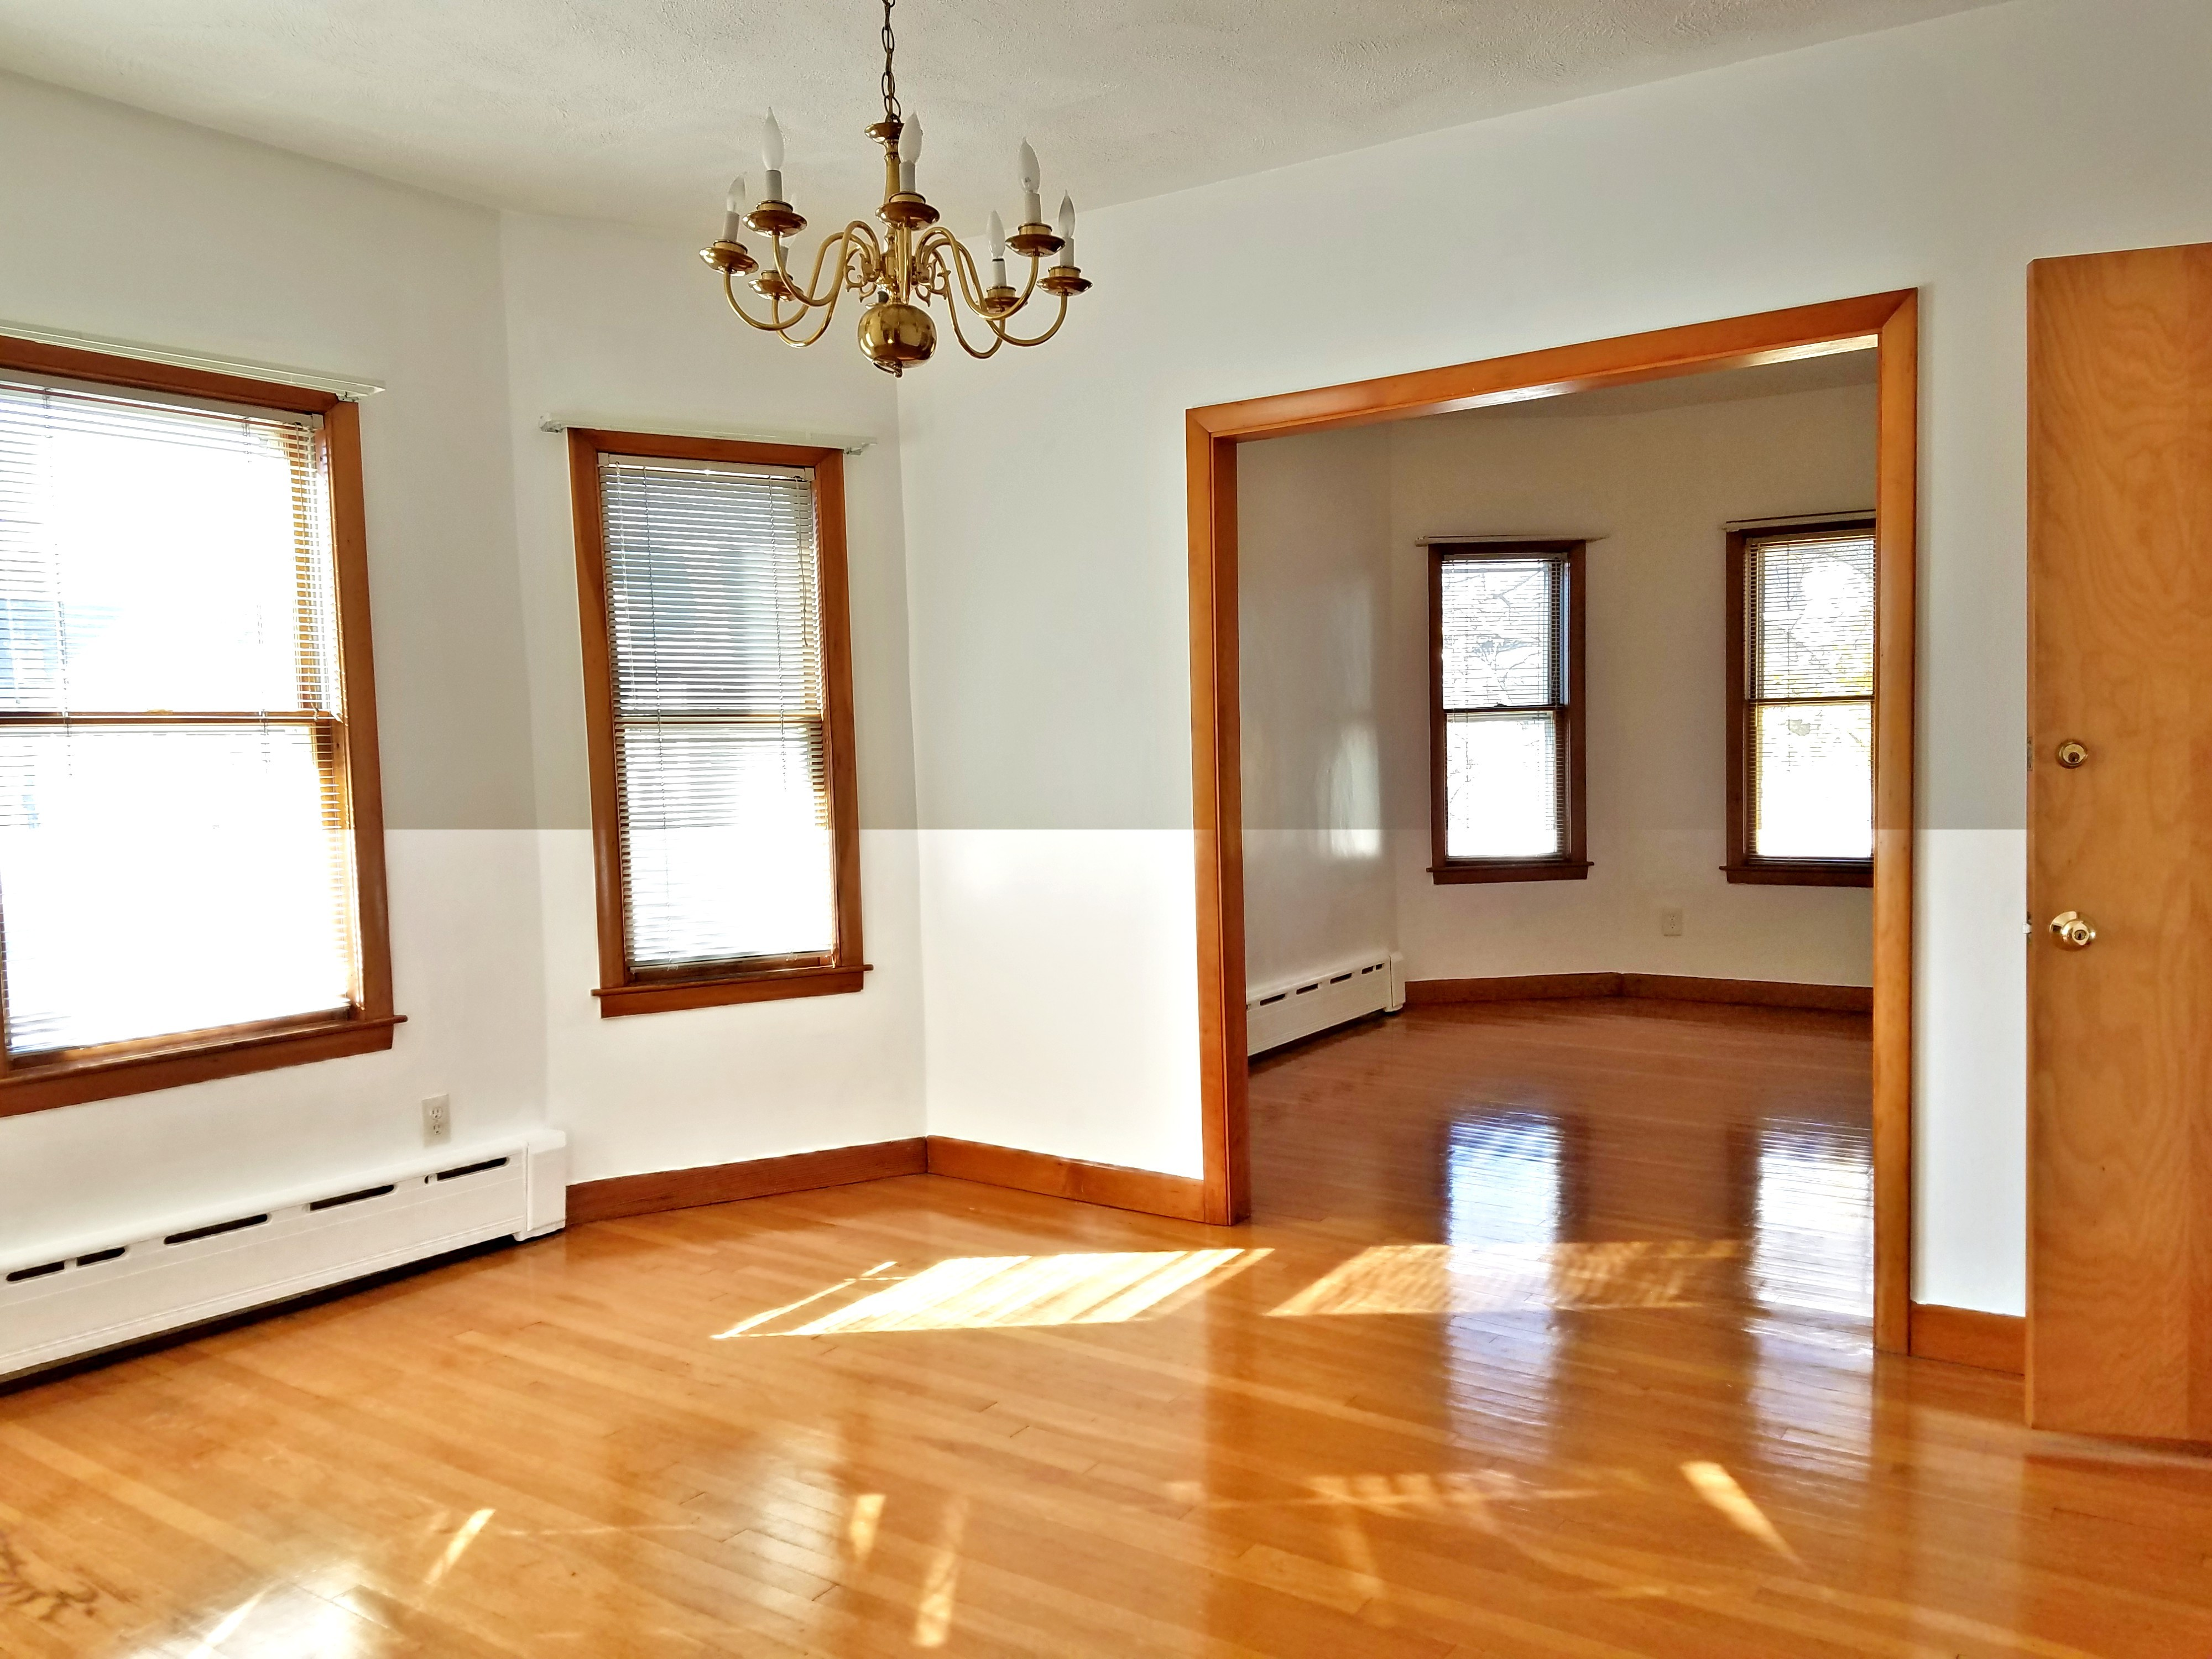 boston ave harris road medford ma 02155 2 bedroom apartment for